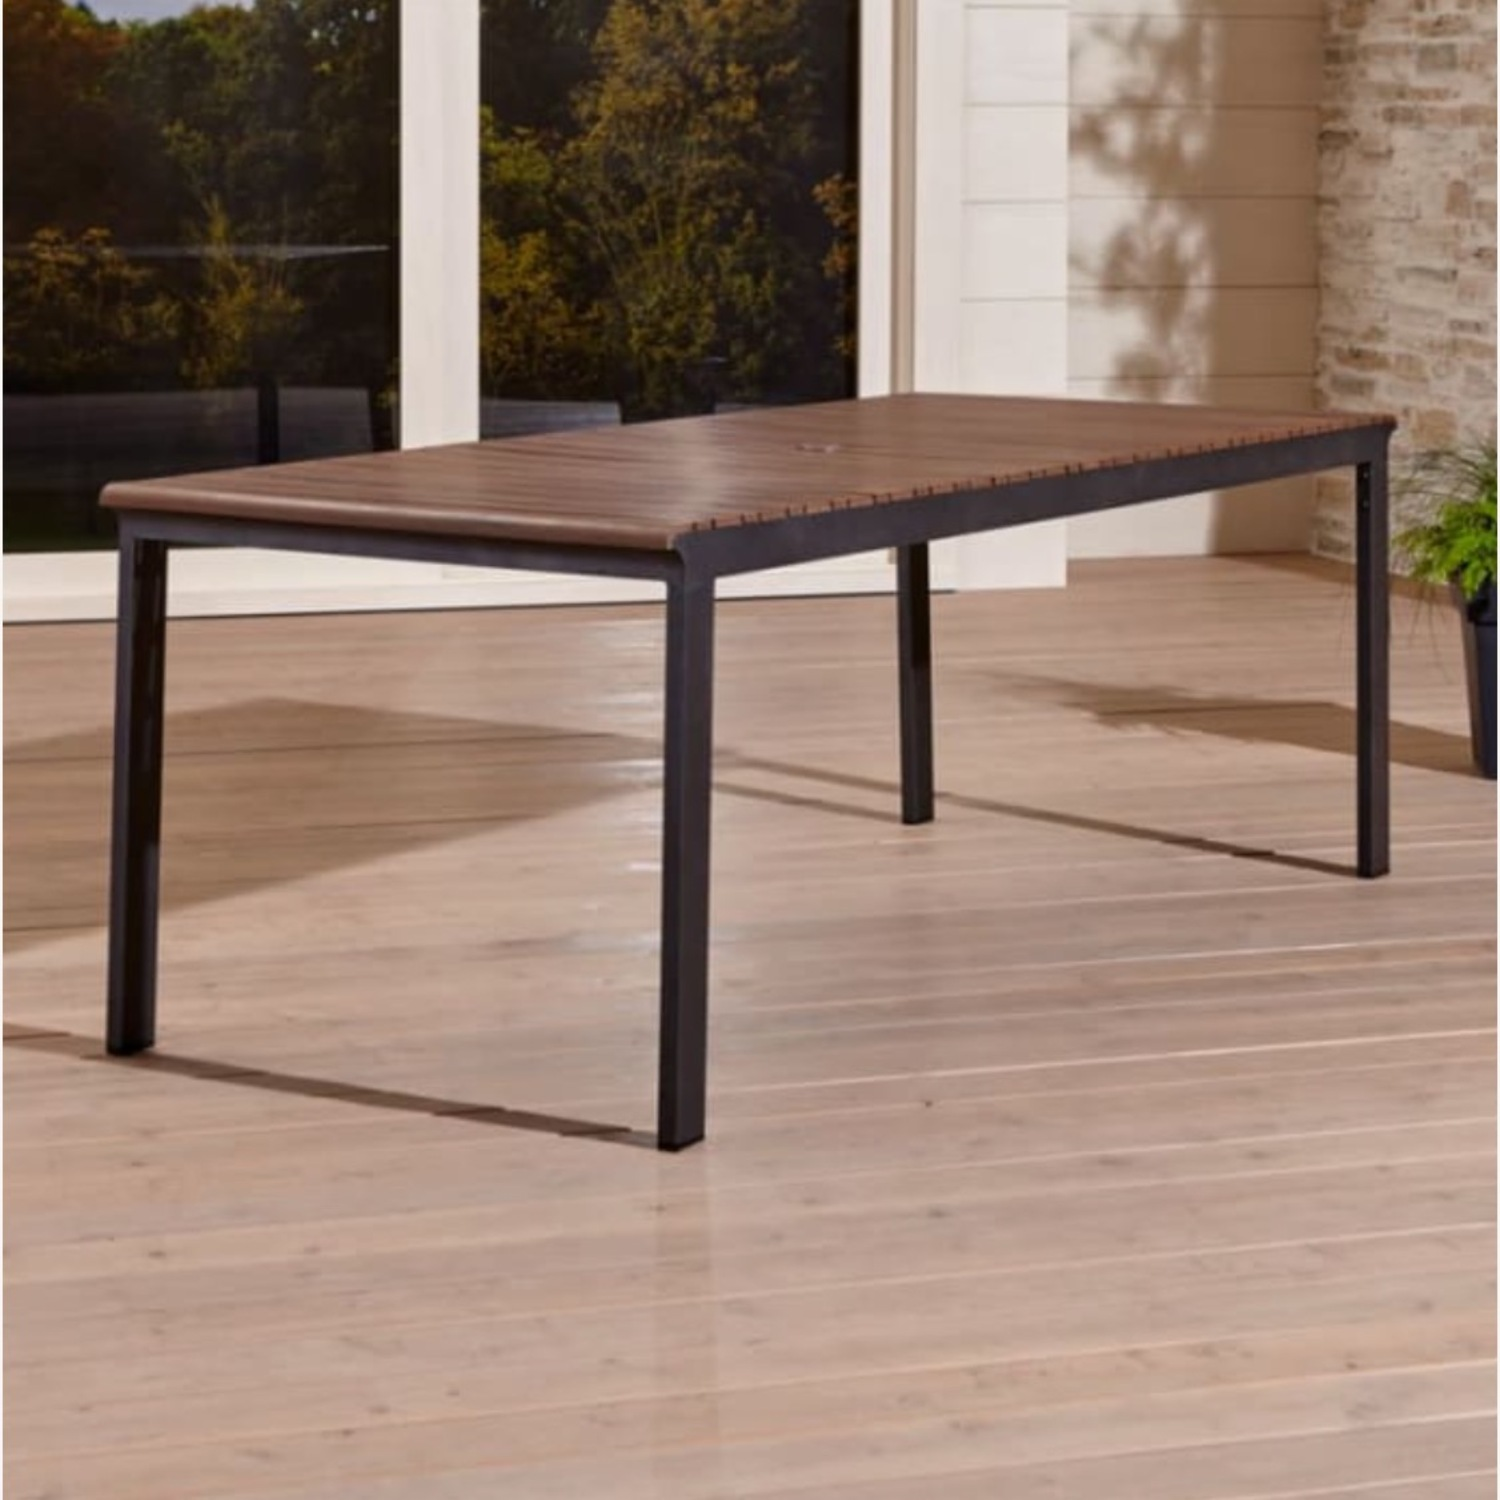 Crate & Barrel Outdoor Rocha Dining Table - image-0